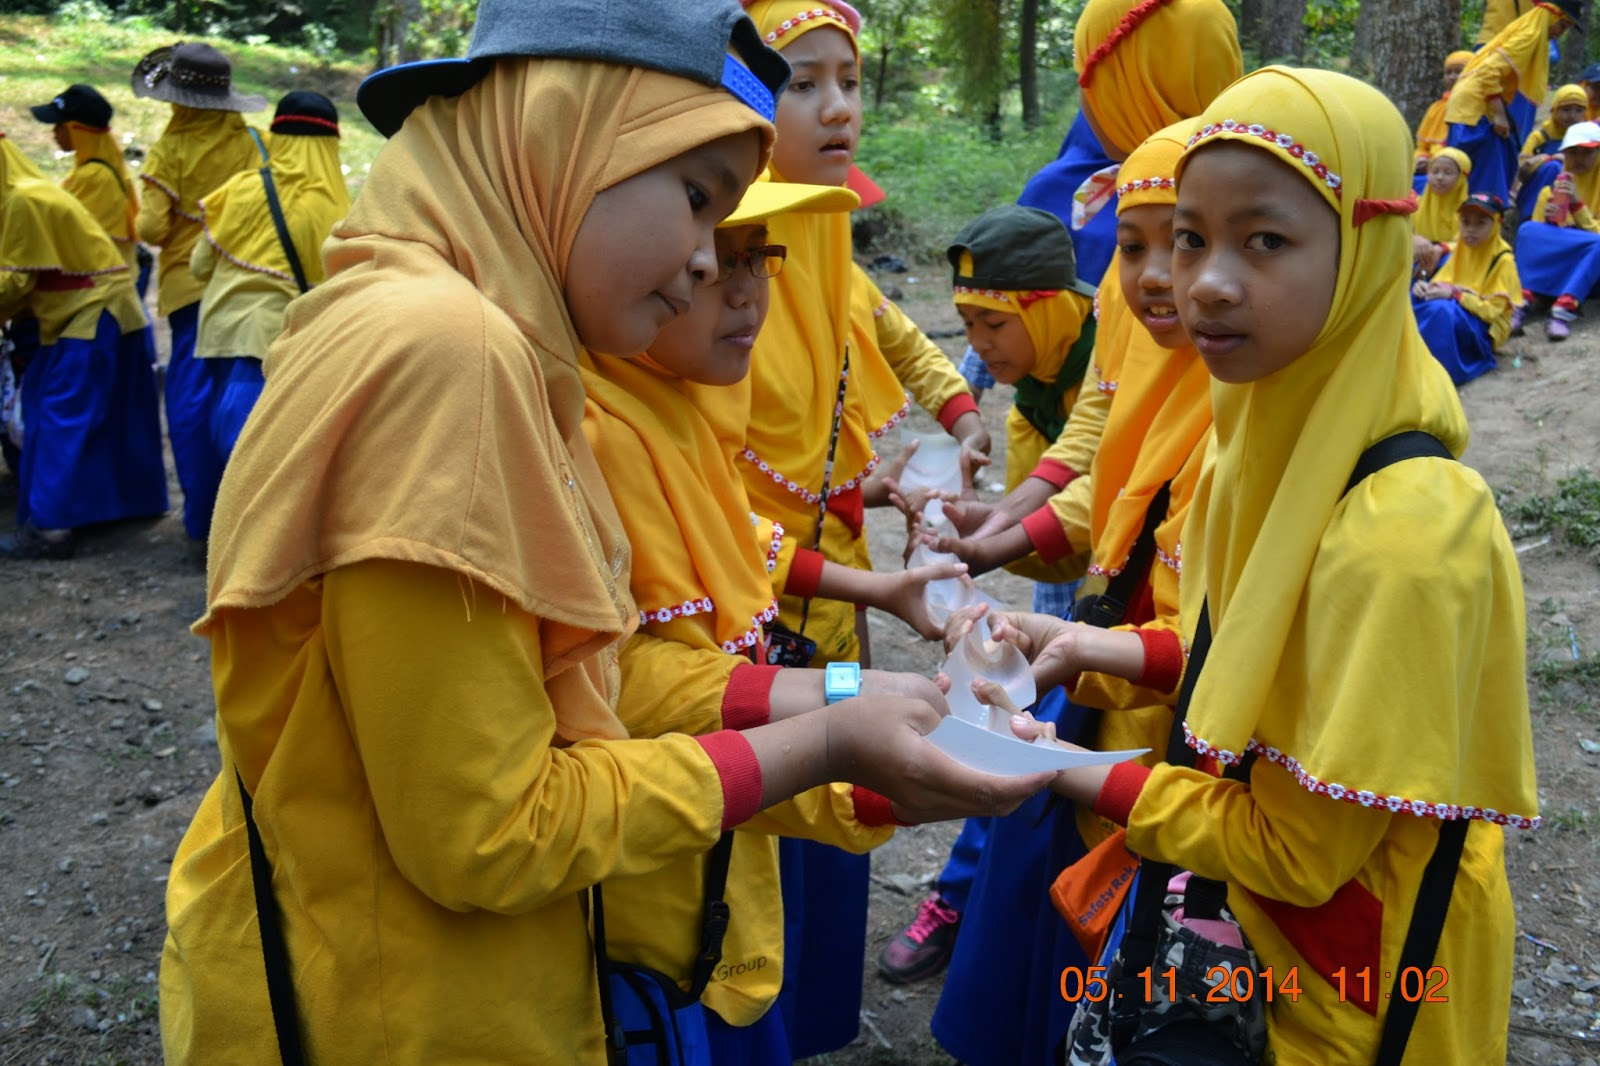 outbound,sdii al abidin,mainan air